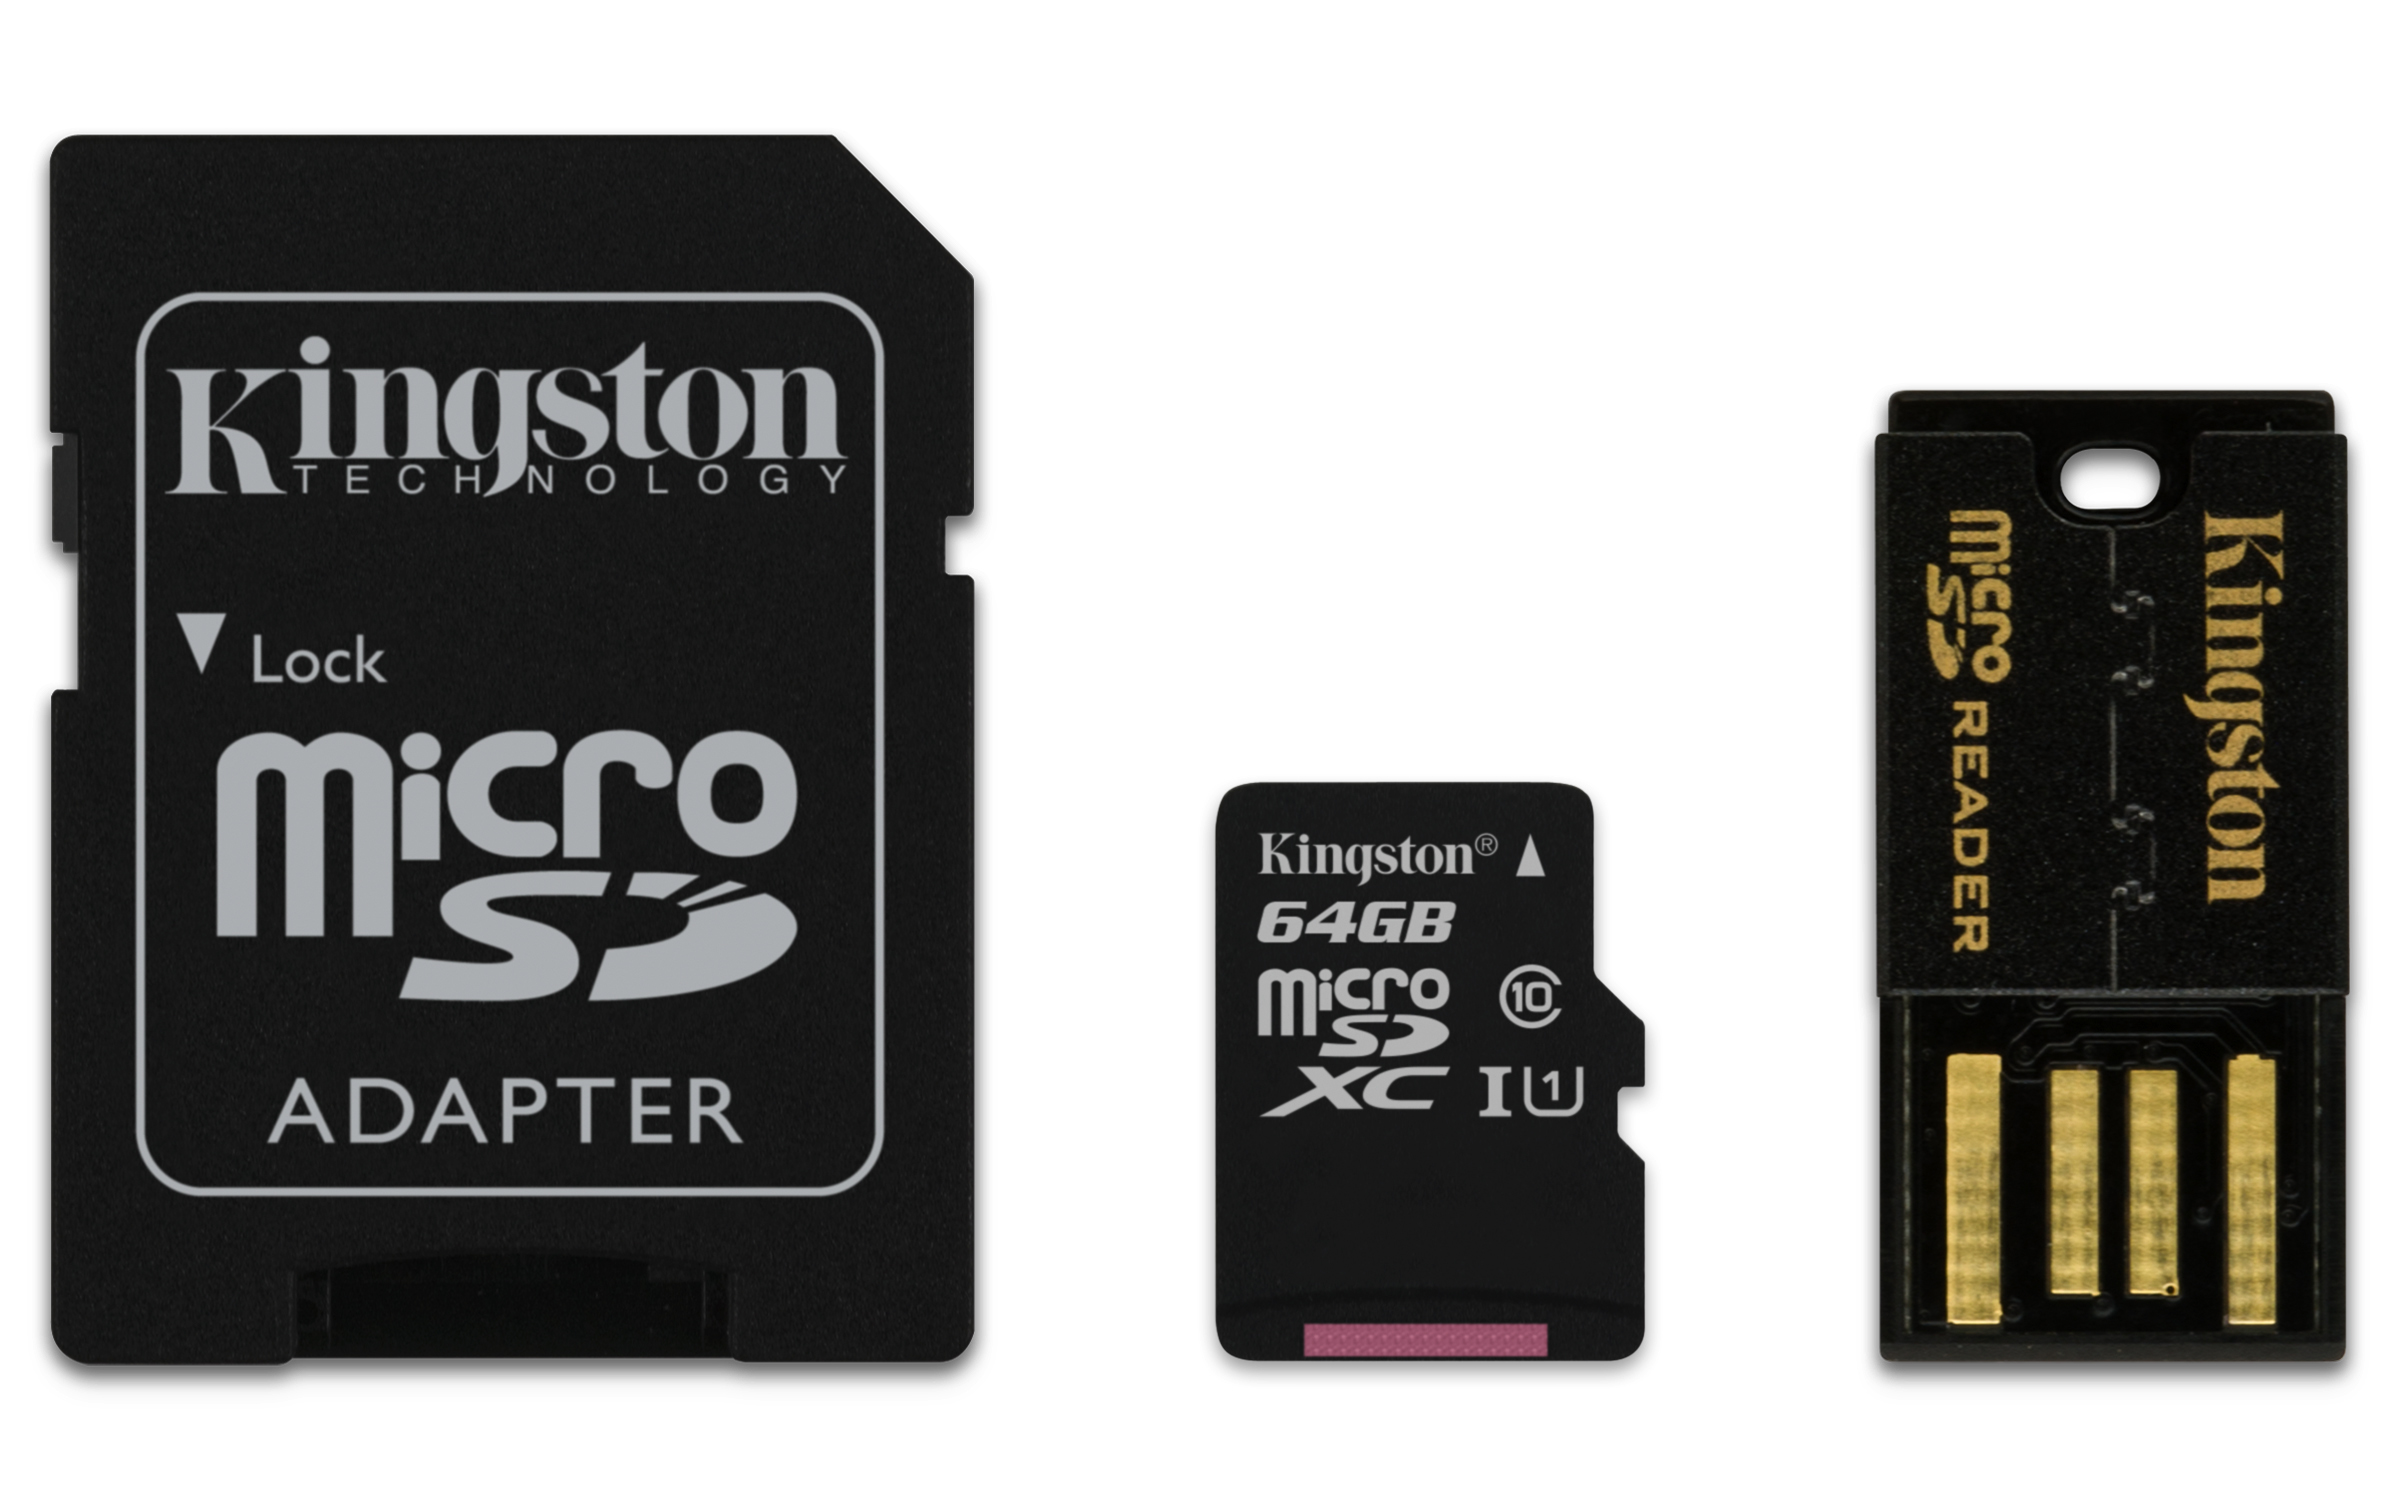 Kingston Technology Mobility kit / Multi Kit 64GB 64GB MicroSDXC UHS Class 10 memory card